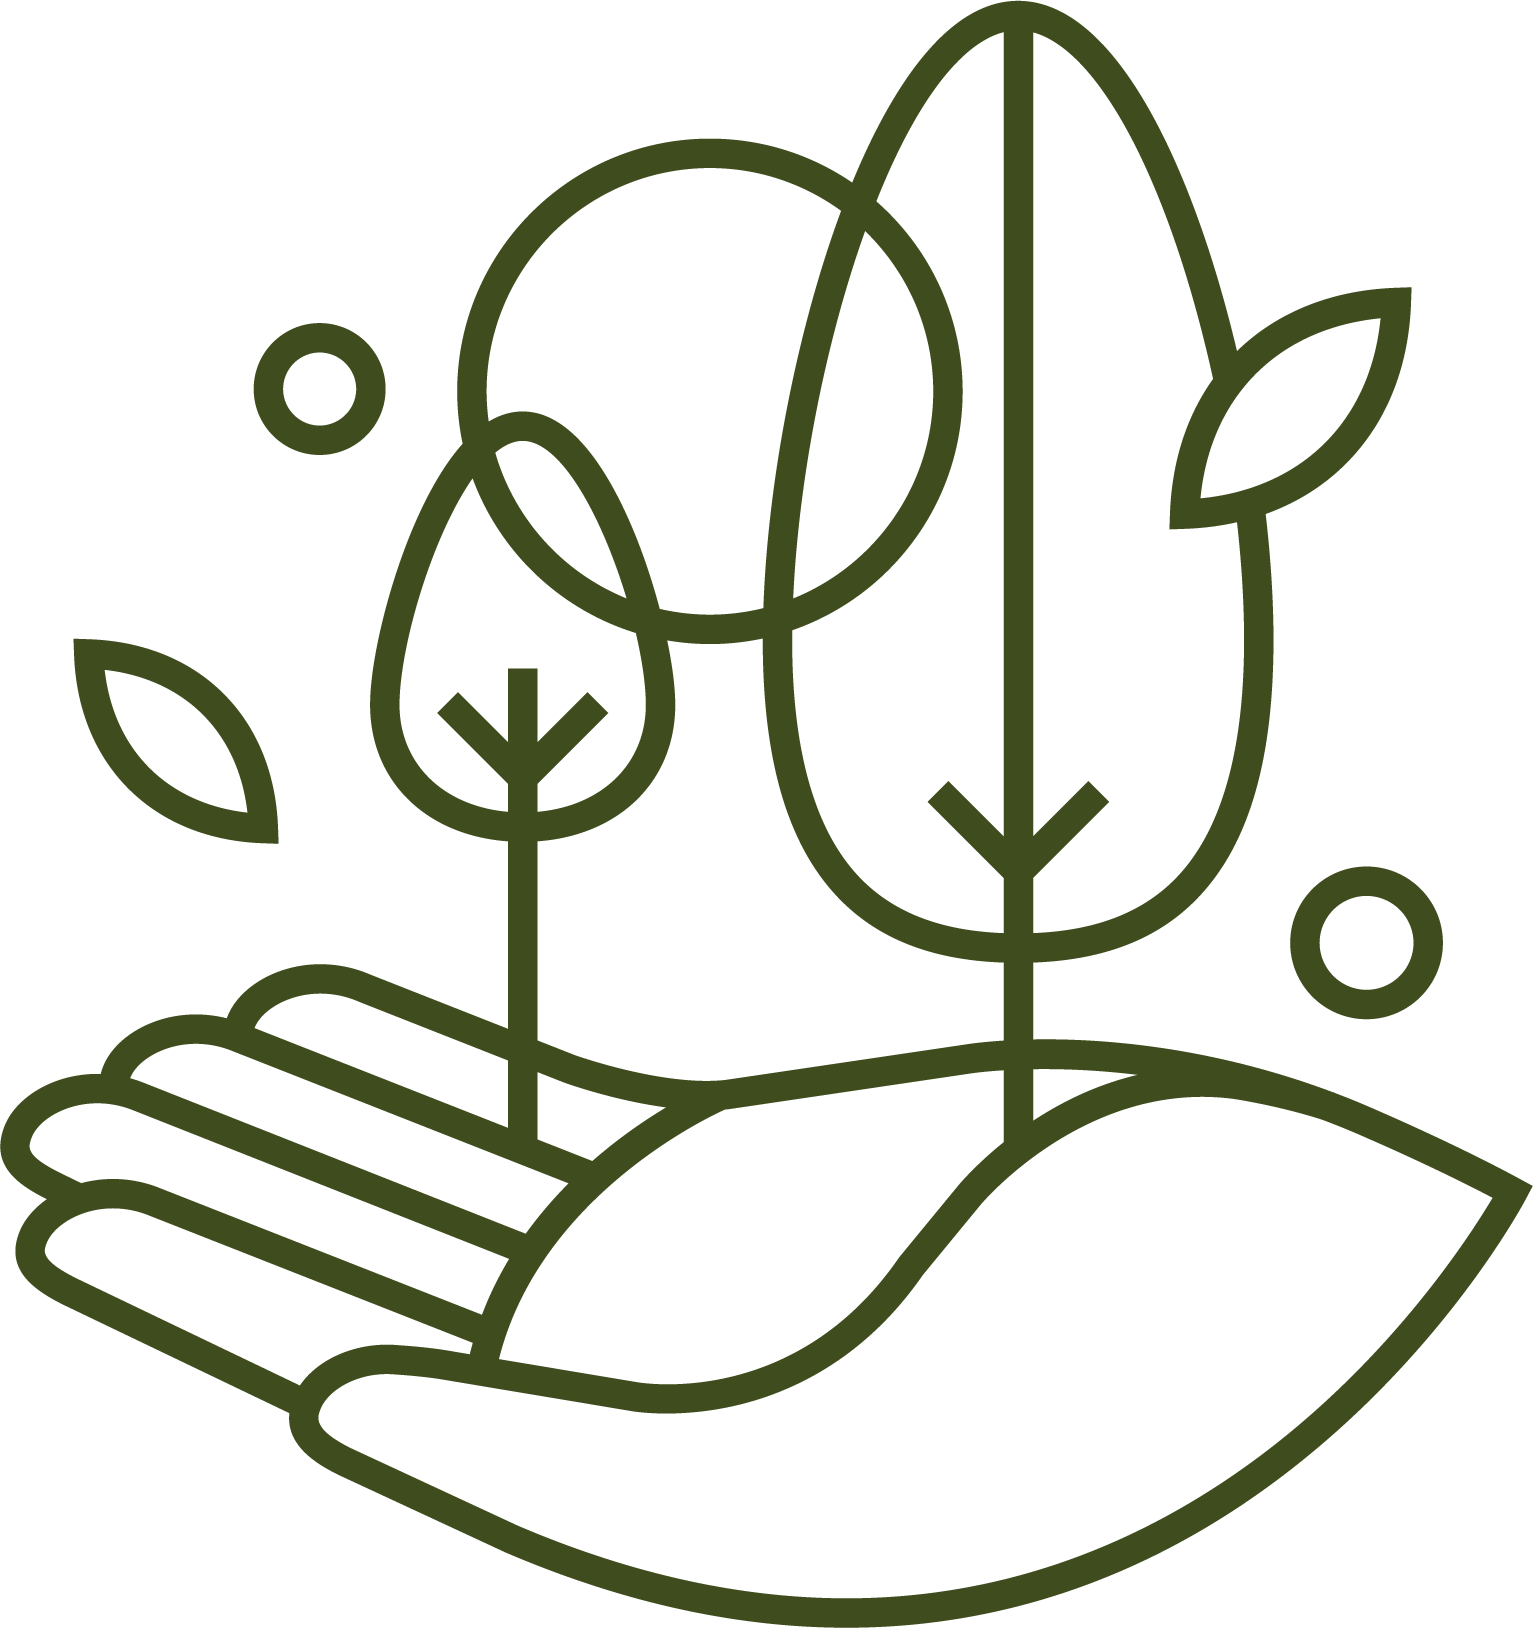 The Future Forest Company Company Logo